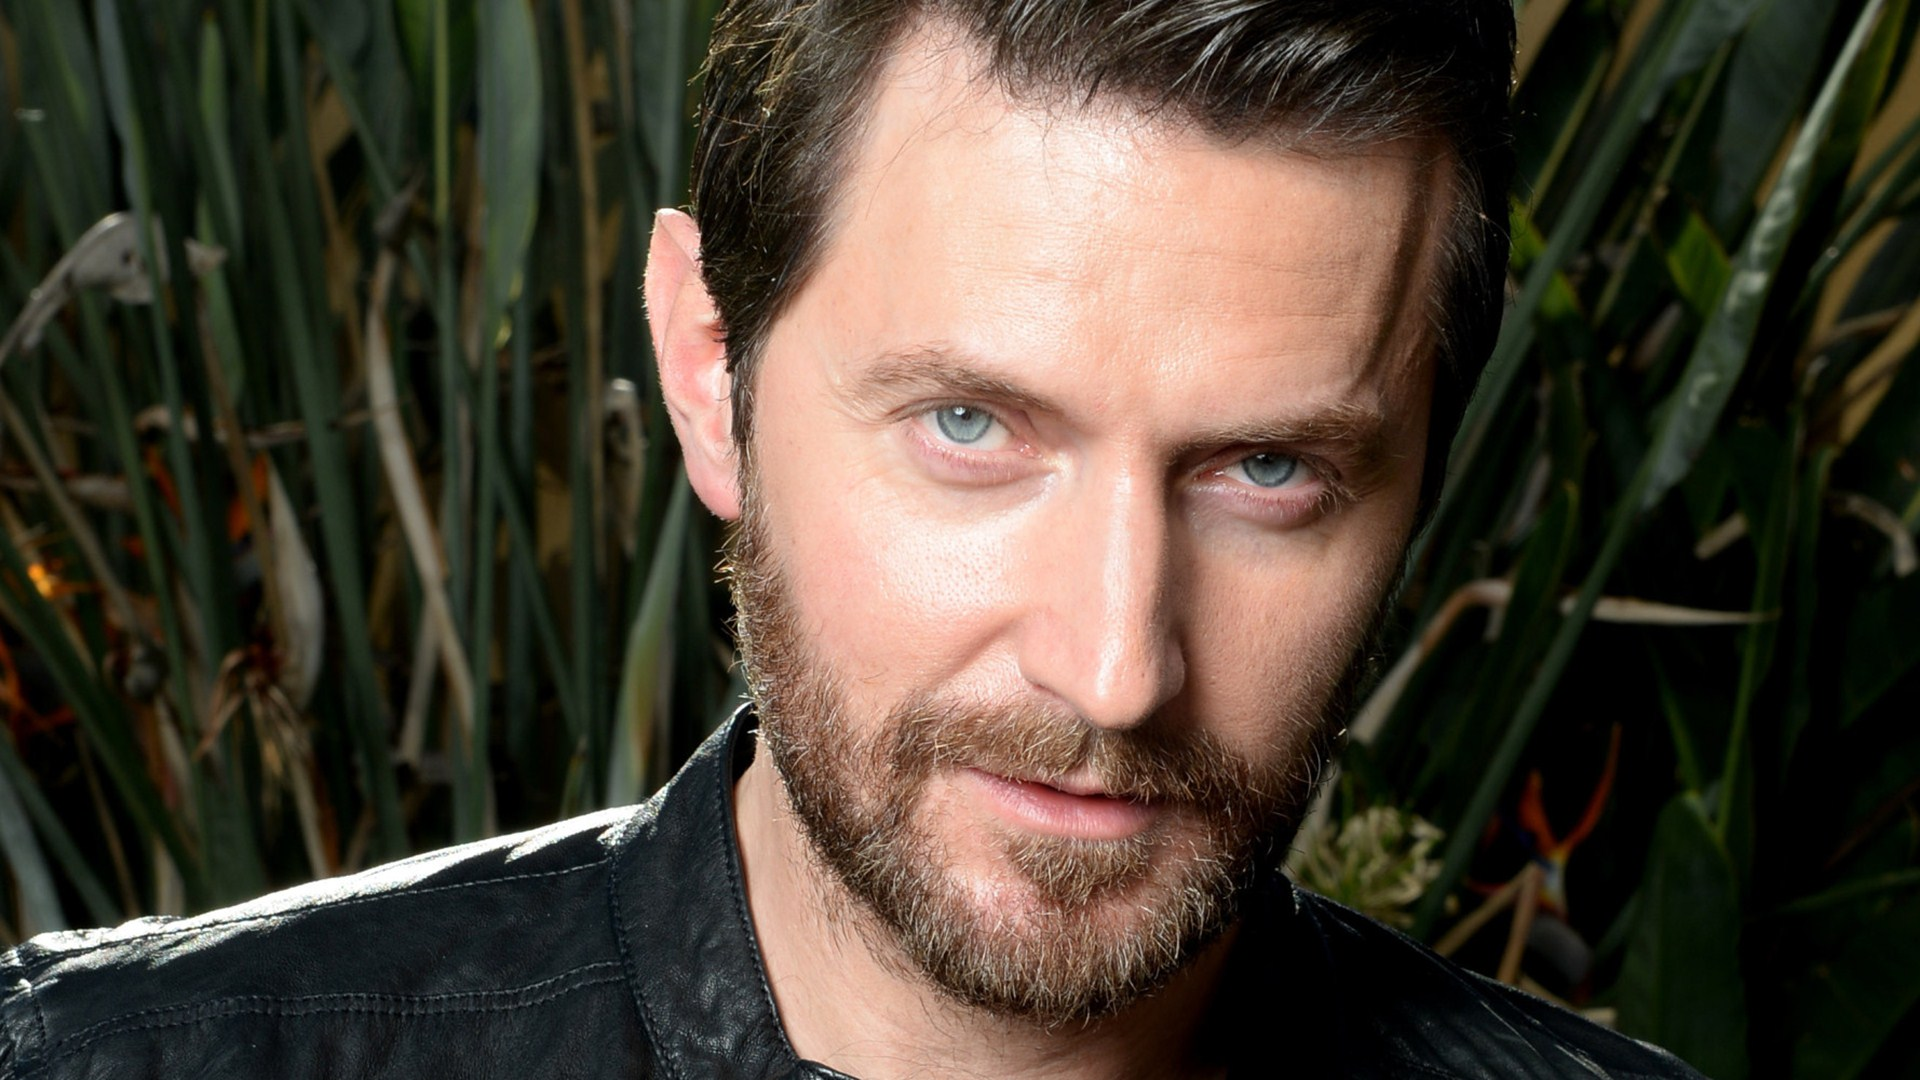 richard armitage twitter officialrichard armitage gif, richard armitage tumblr, richard armitage instagram, richard armitage 2017, richard armitage star wars, richard armitage vk, richard armitage young, richard armitage gif hunt, richard armitage and hugh jackman, richard armitage love love love, richard armitage listal, richard armitage samantha colley, richard armitage reads north and south, richard armitage online, richard armitage gallery, richard armitage wiki, richard armitage torin, richard armitage barefoot, richard armitage twitter official, richard armitage natal chart